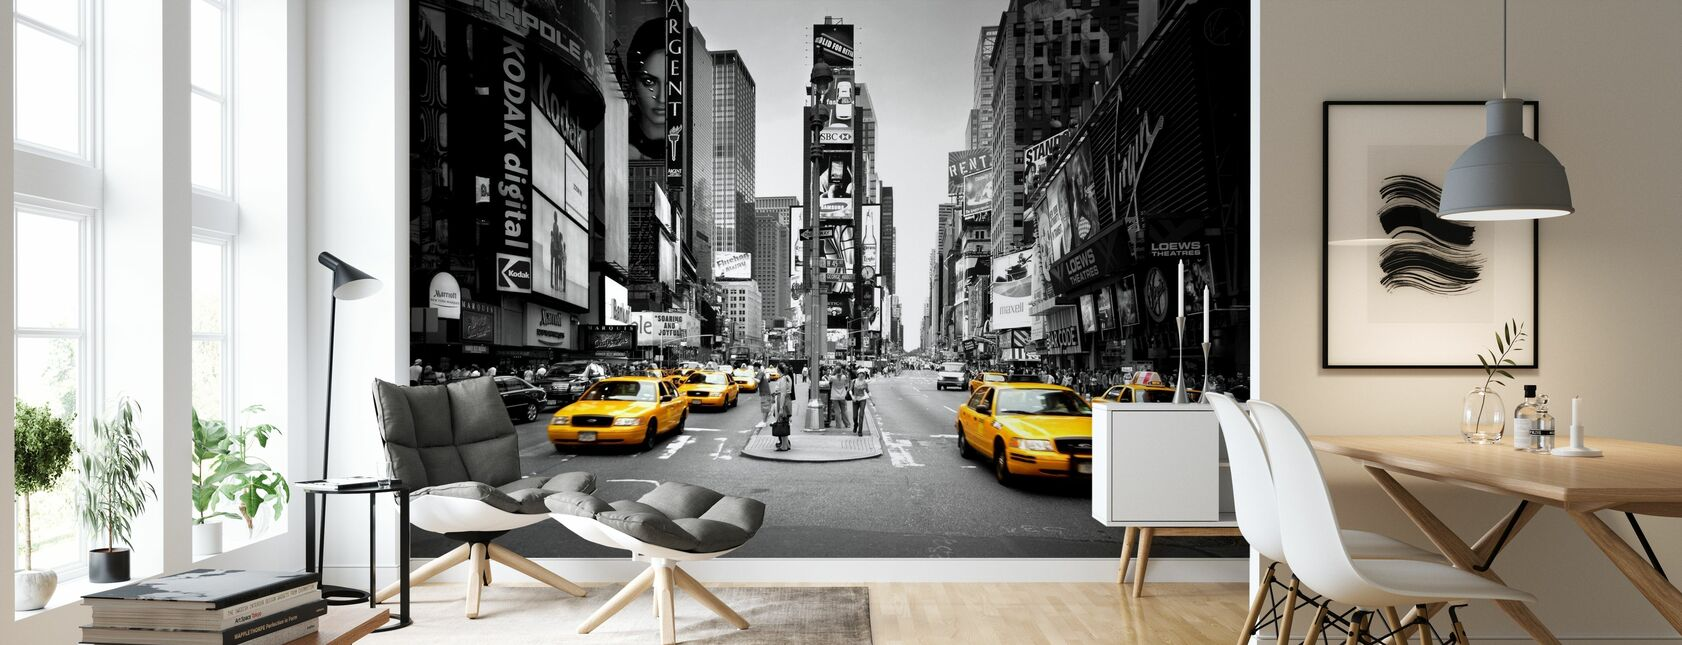 Times Square, New York, Verenigde Staten - Behang - Woonkamer